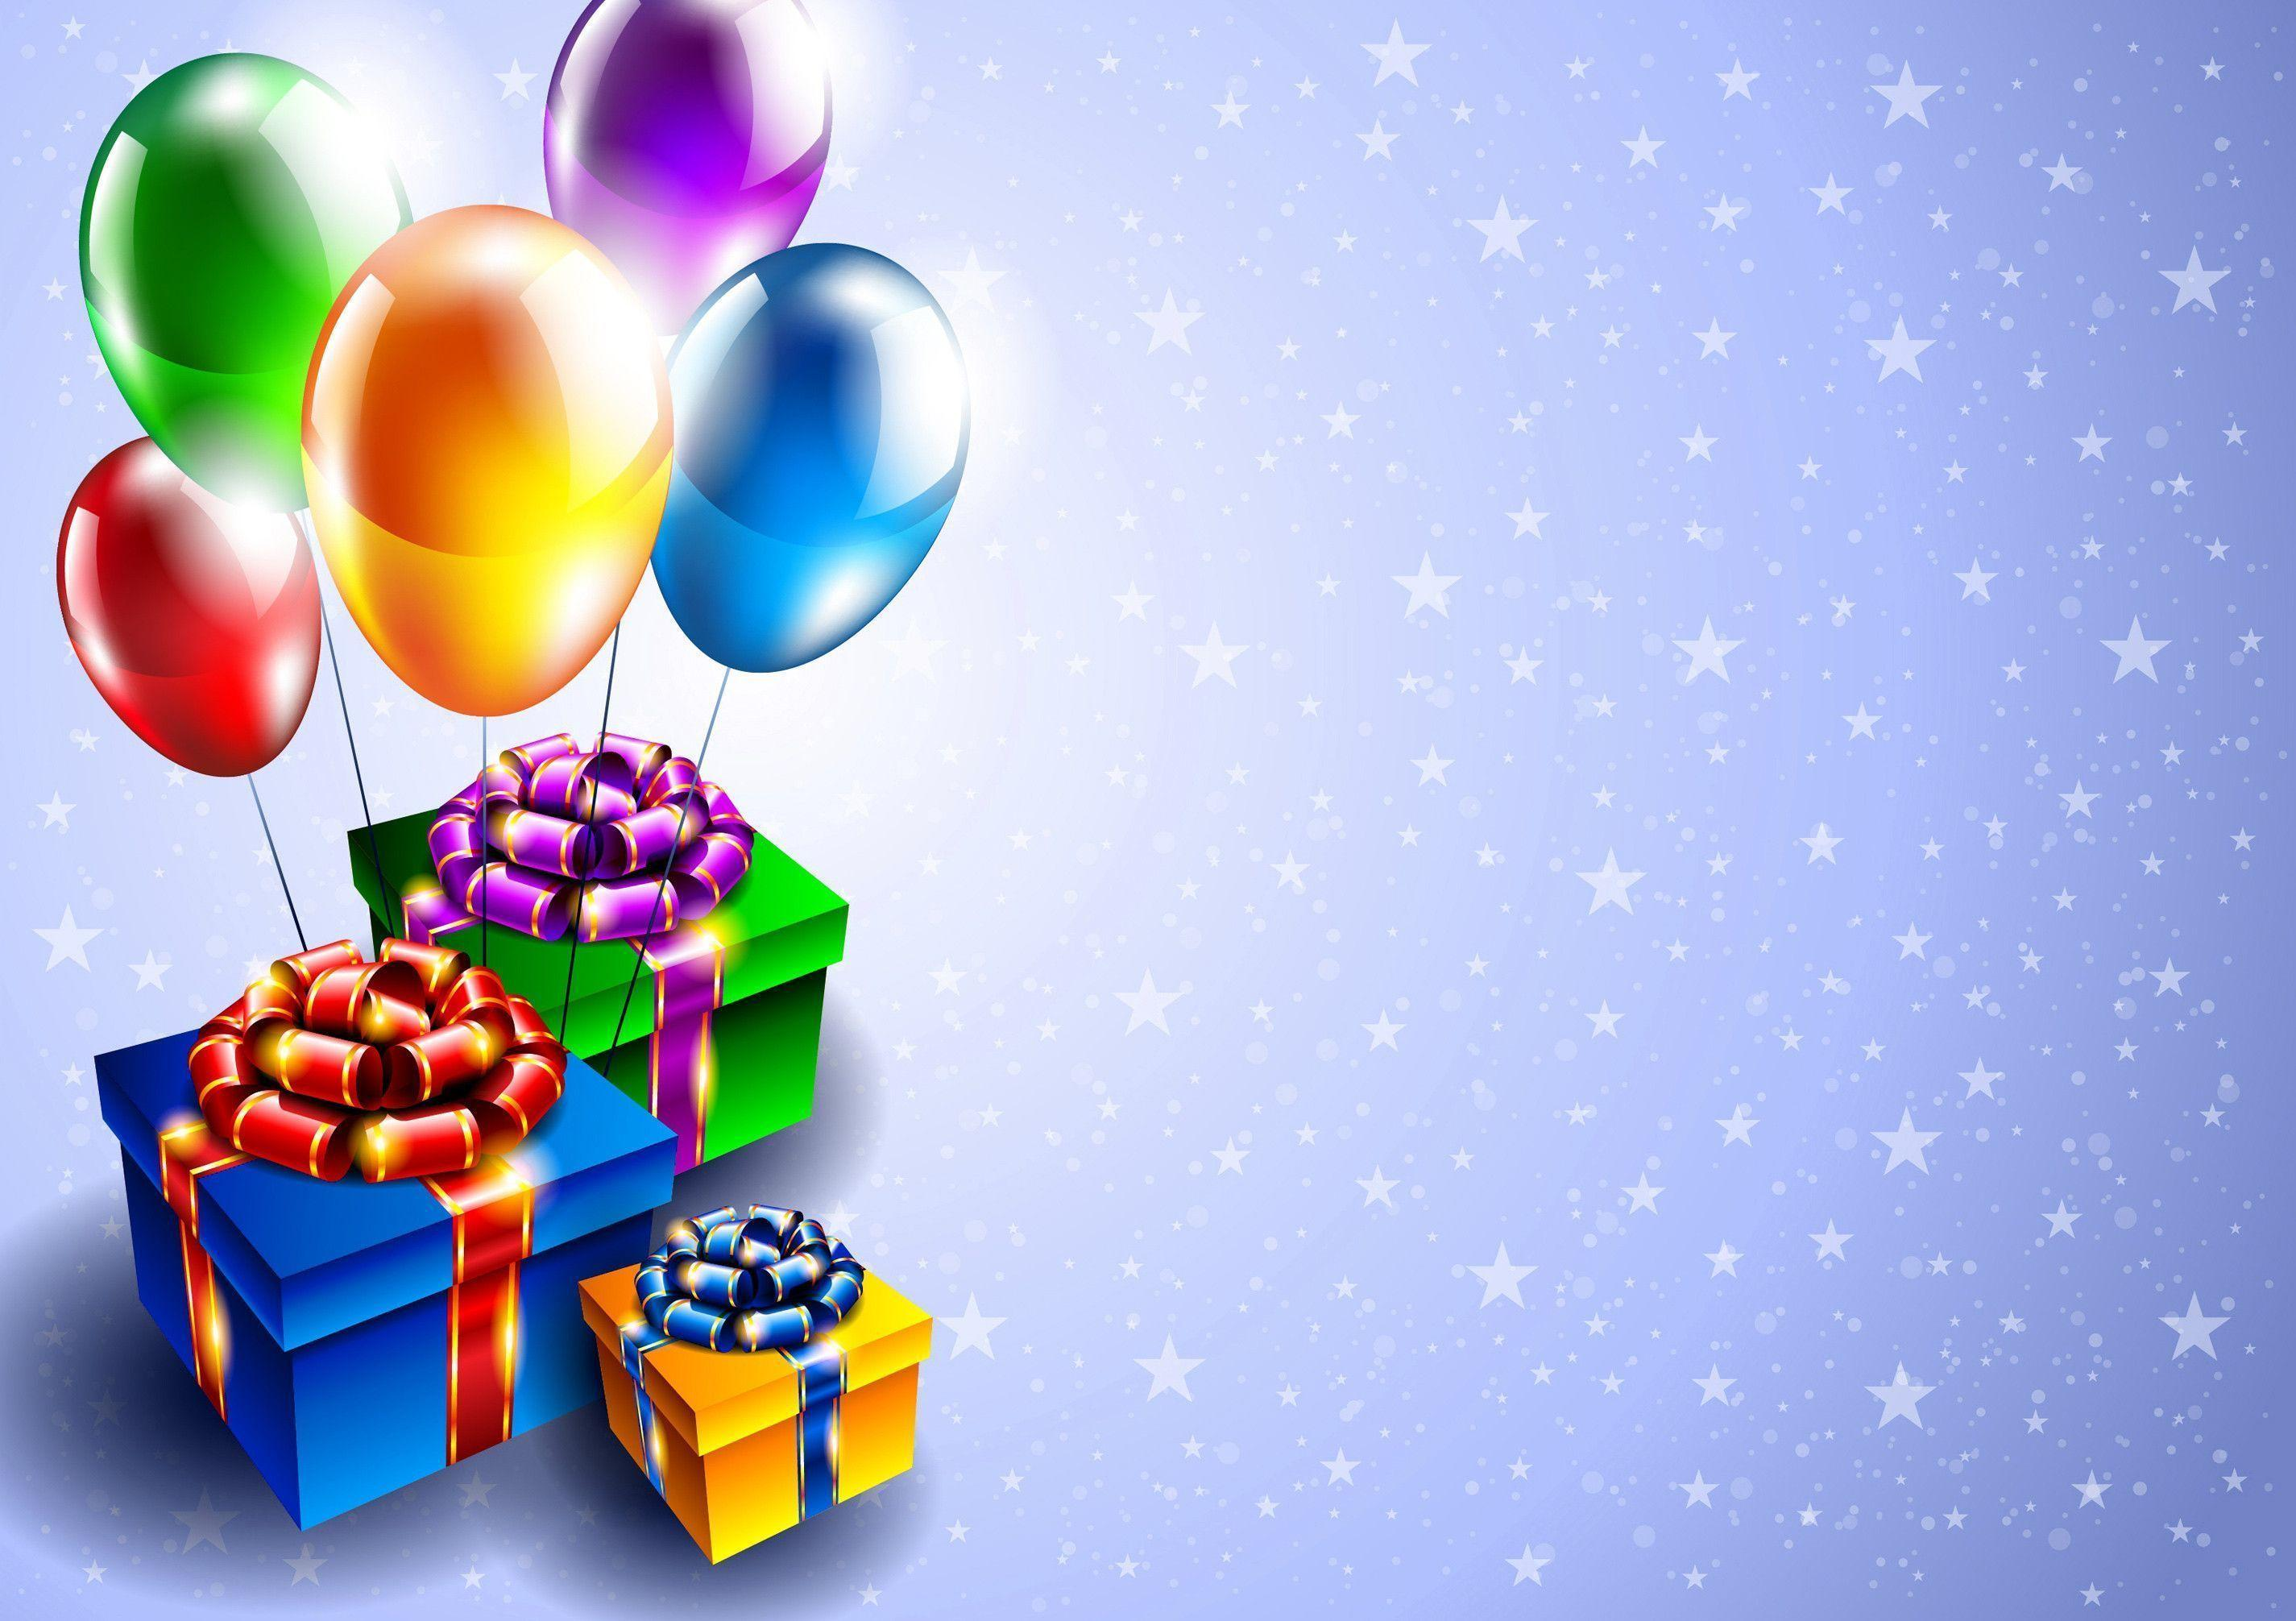 birthday wallpaper download for - photo #10